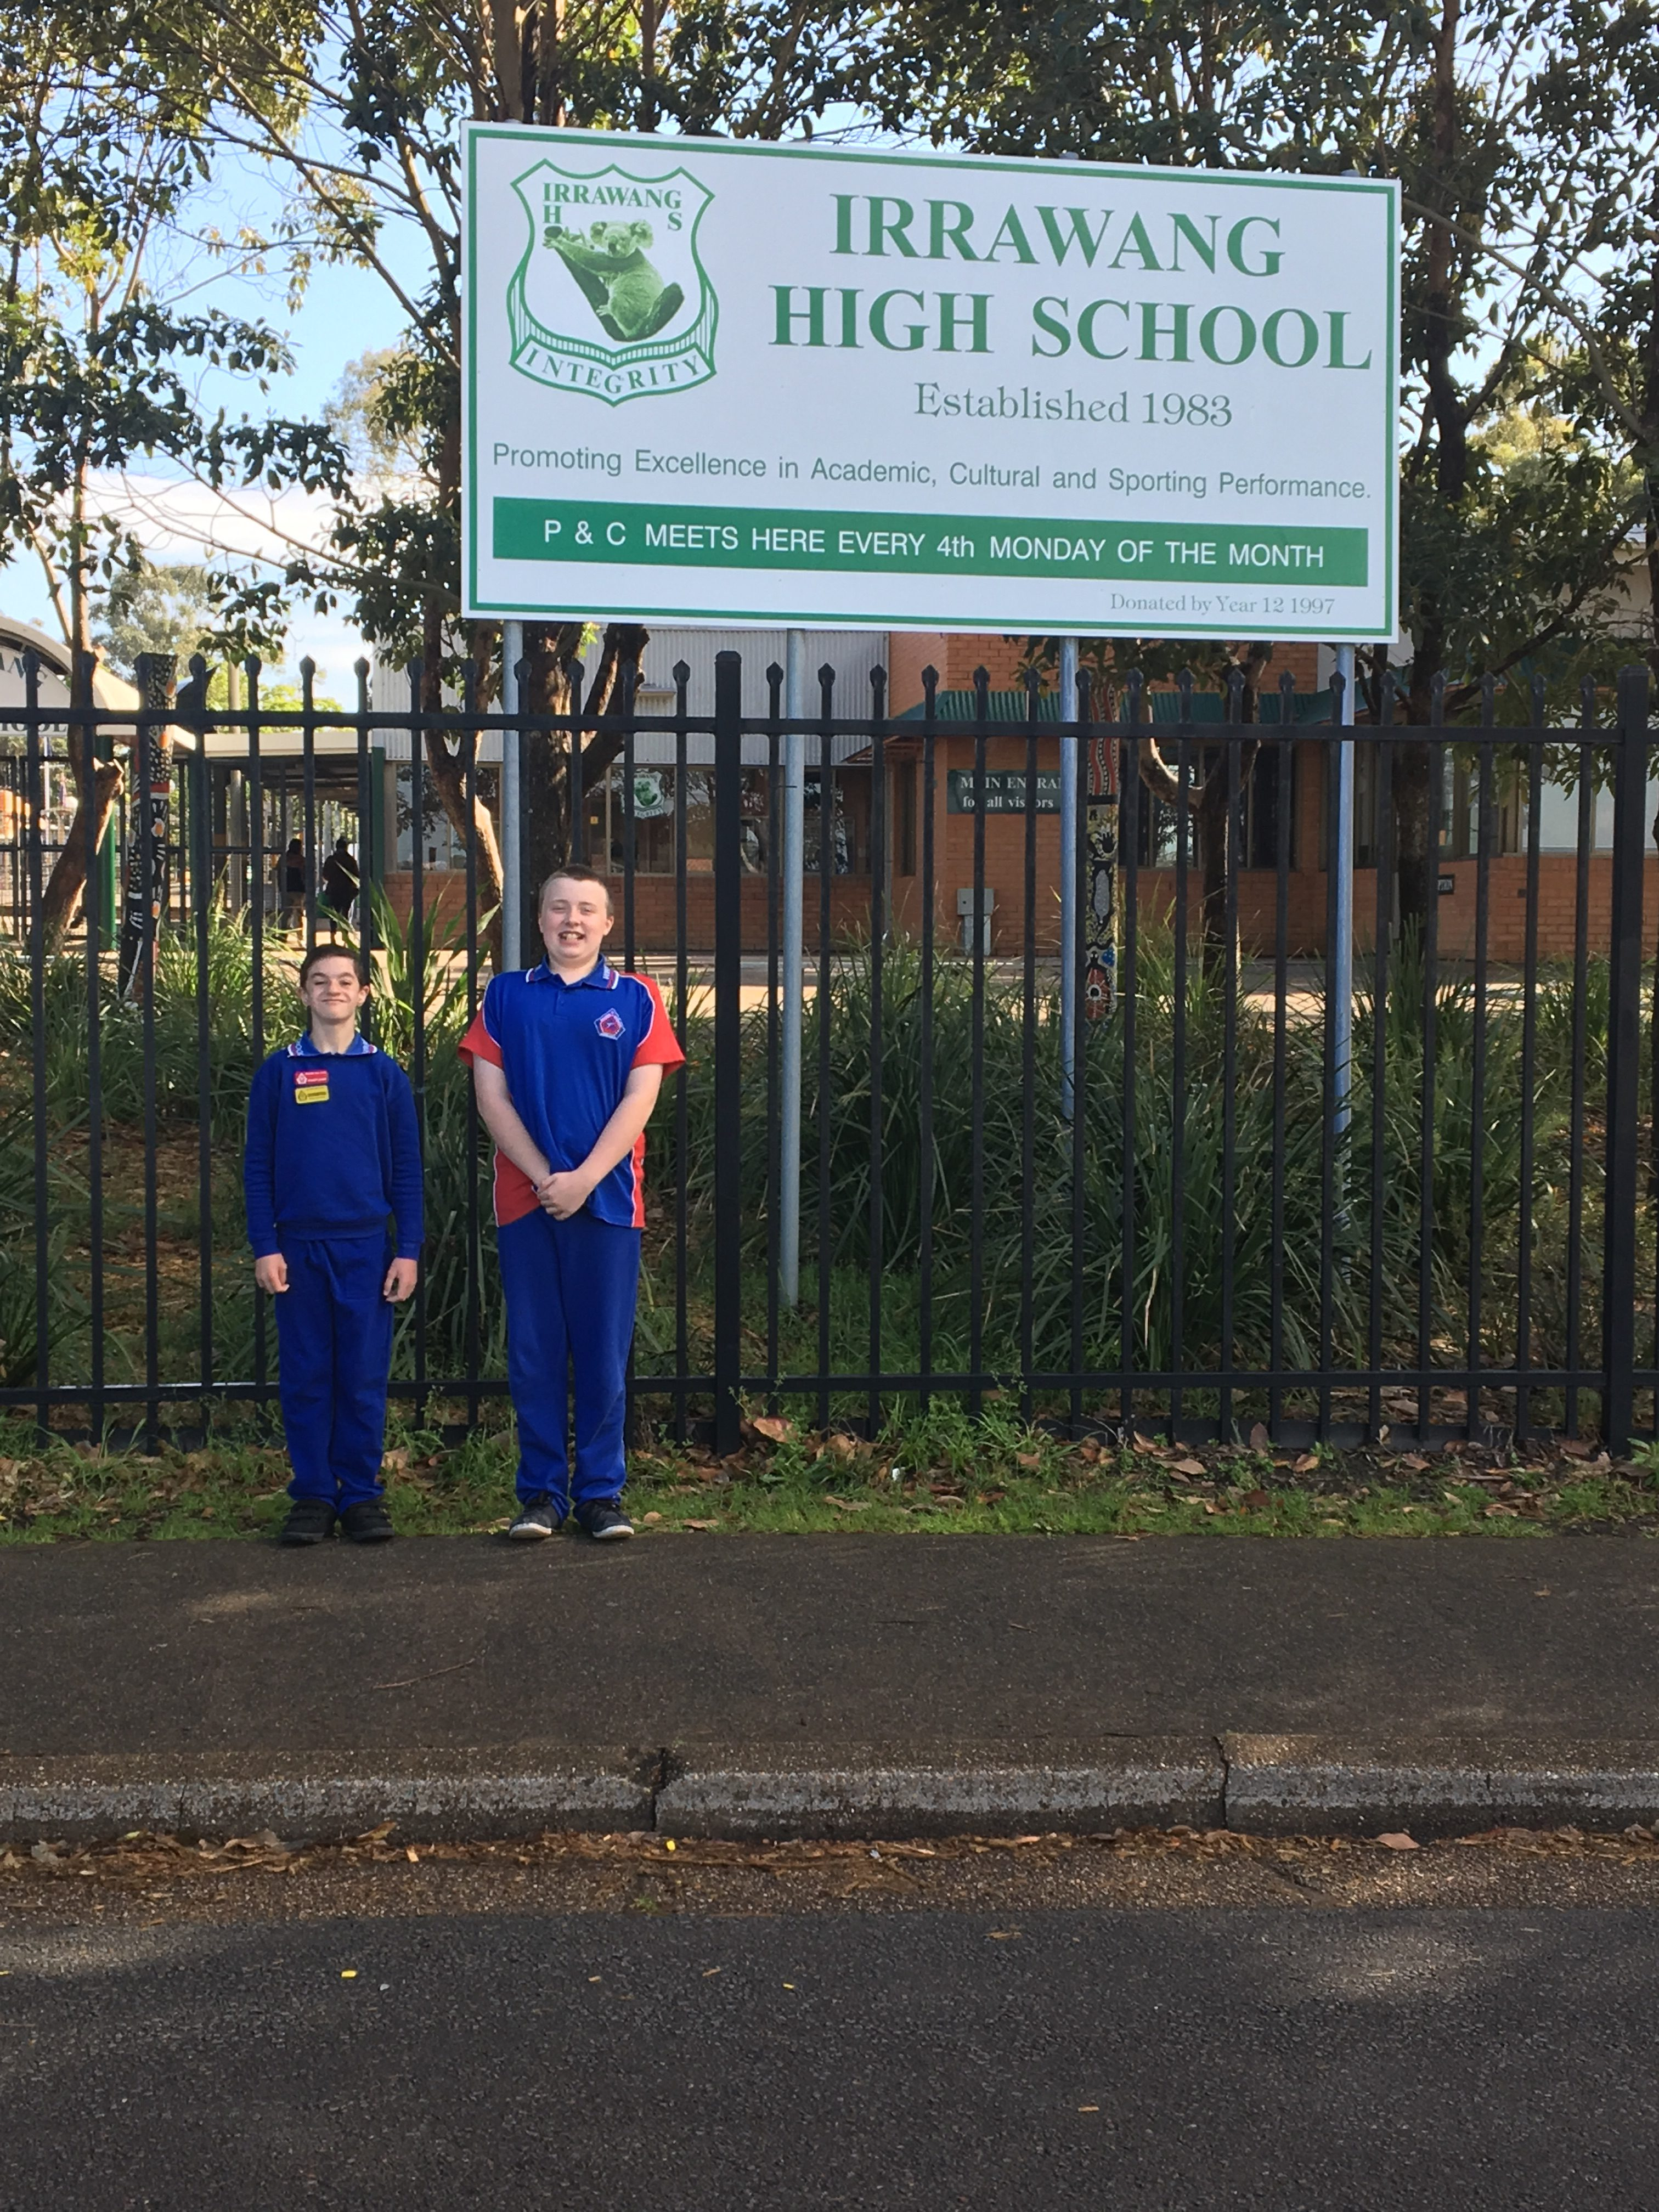 Otto van de Wijgaart and Joel Cunningham outside Irrawang High School, where they will attend in 2017.